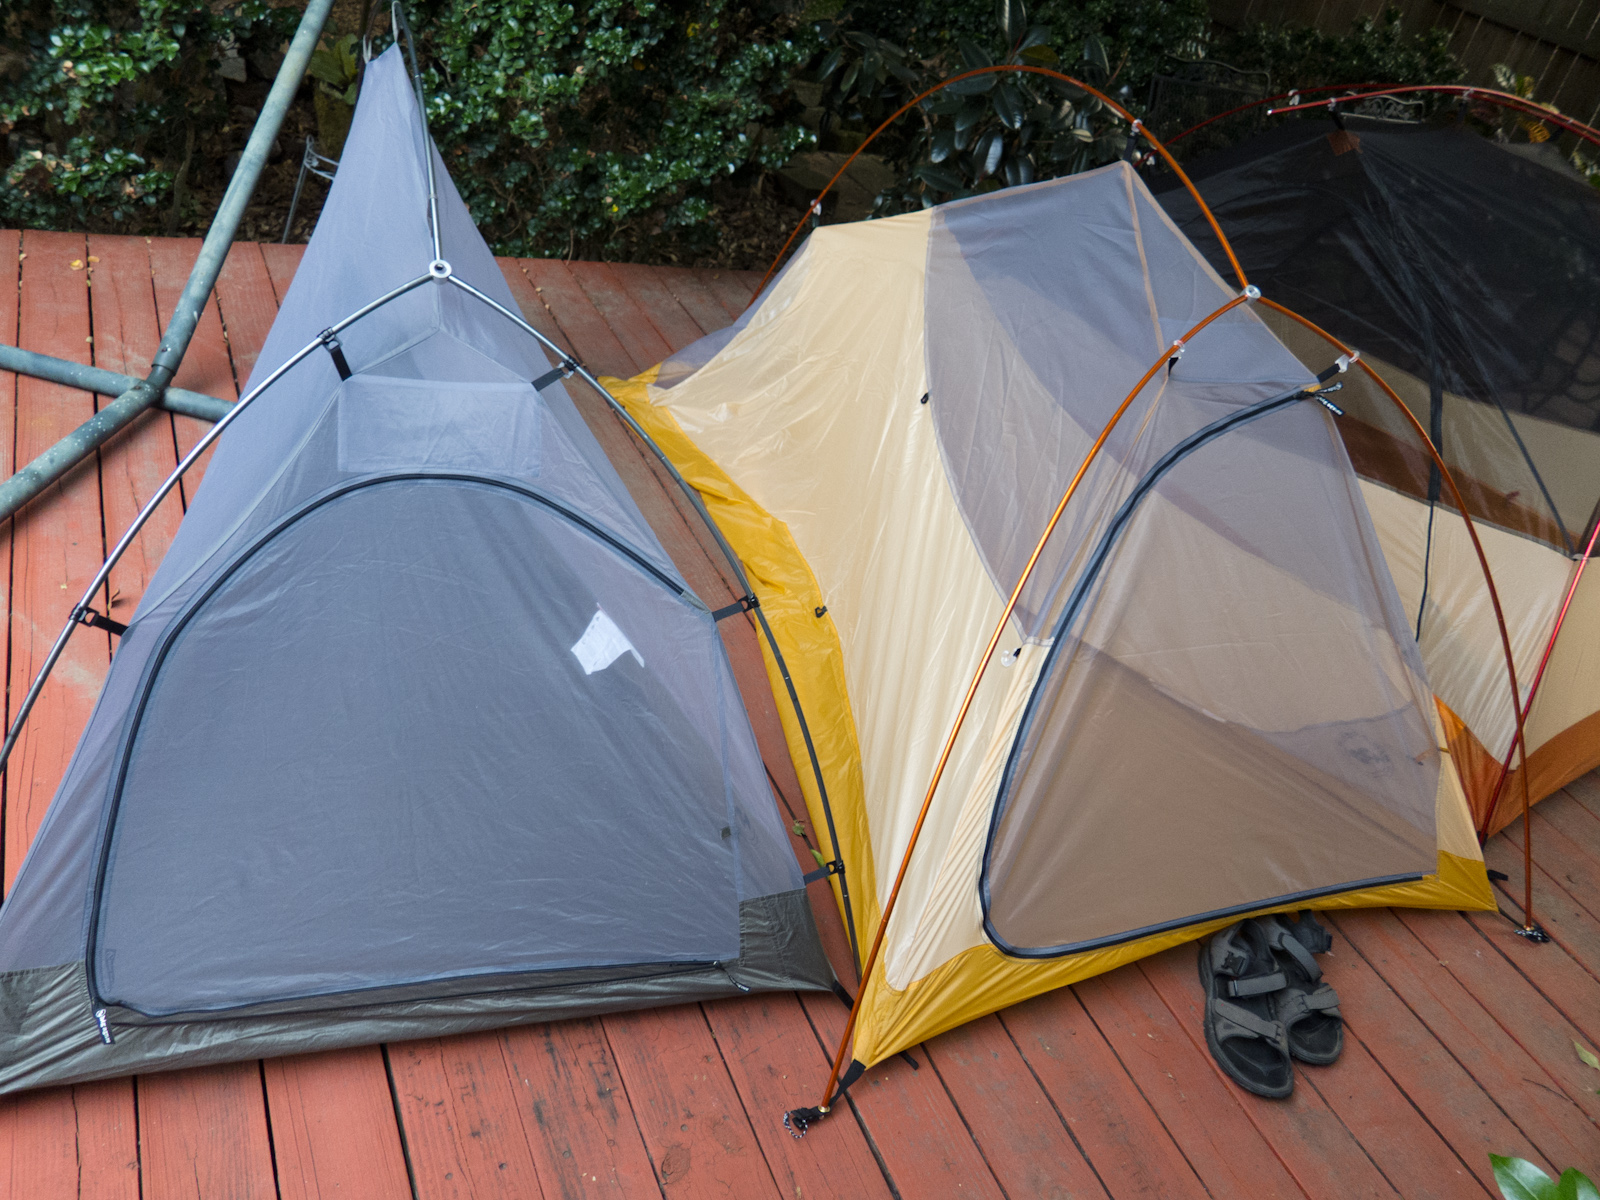 Also as I mentioned I didnu0027t actually stake out the tents but the Fly Creek being a two person tent vs the Seedhouse has massively more floorspace ... & Big Agnes Lightweight Tent Comparison | From A to Z